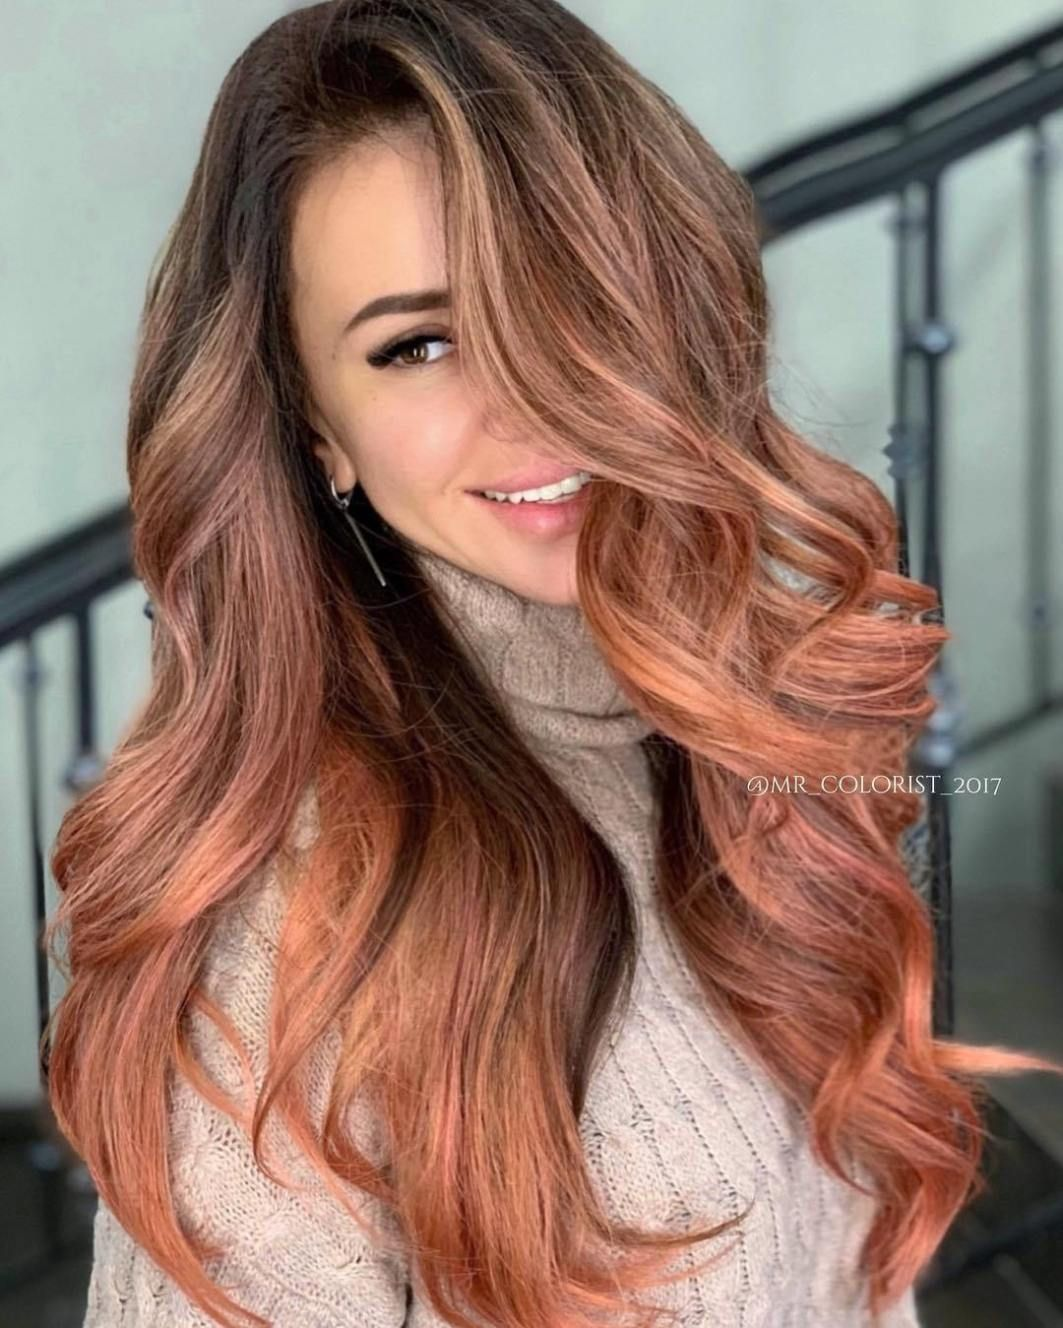 Hair Colors For Pale Skin And Hazel Eyes Best Off The Shelf Hair Color Check More At Http Www Fitnurs Hair Styles Hair Color For Fair Skin Long Hair Styles